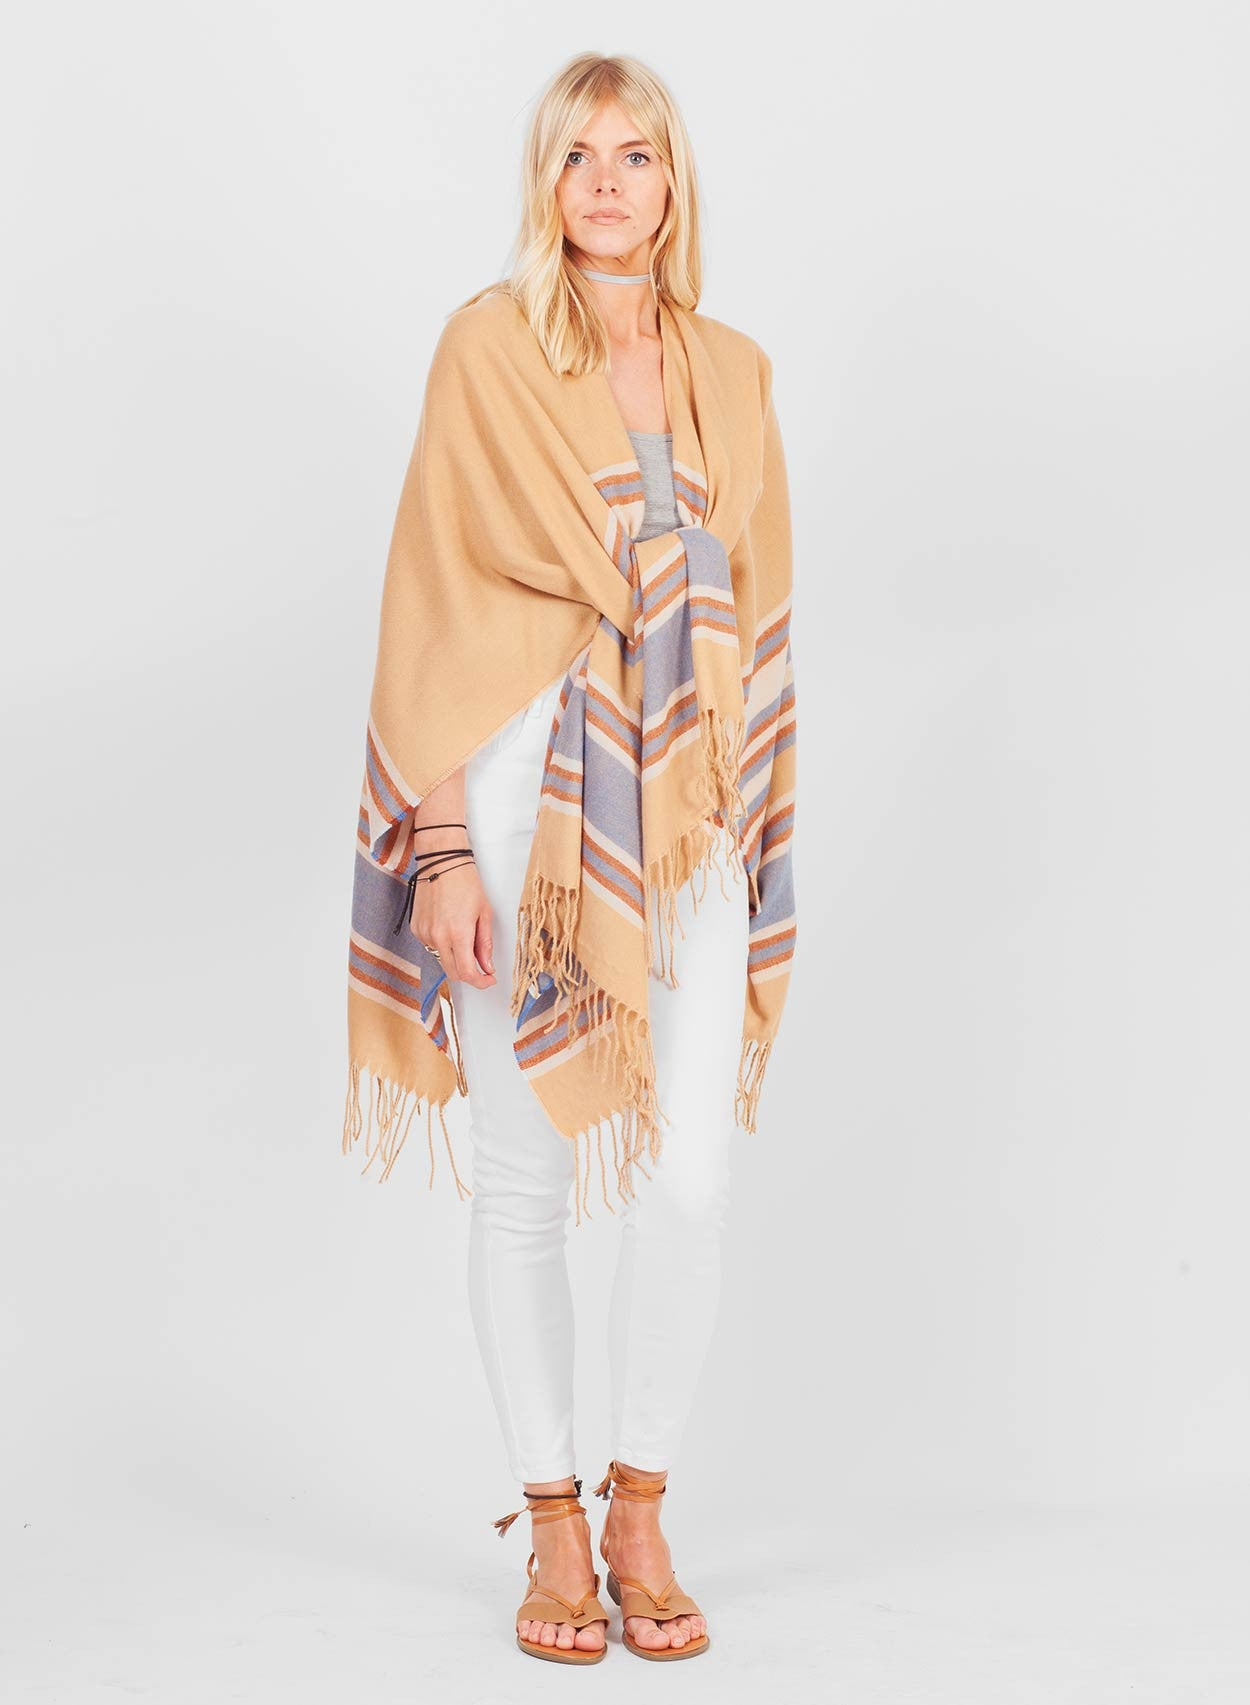 Super Soft Camel Blanket Cape - LoveClothing.com - 4